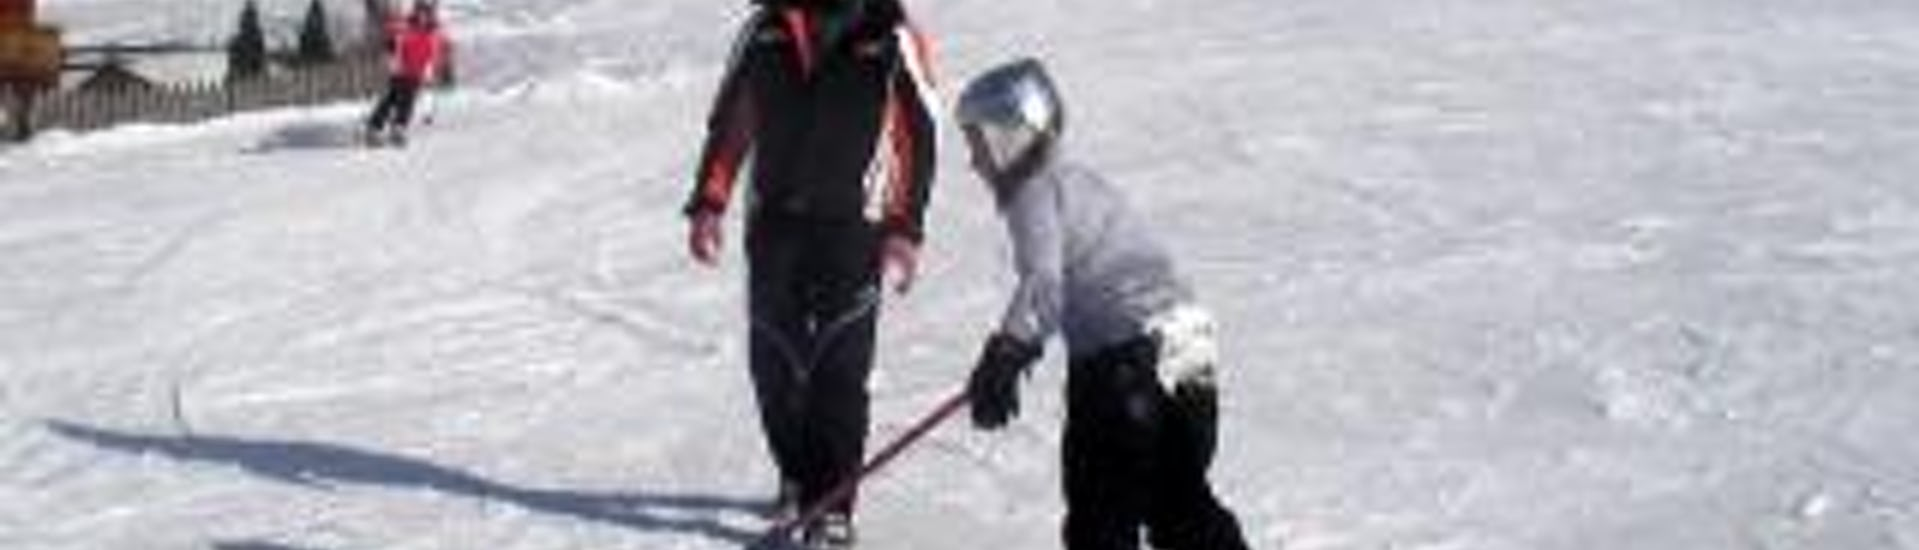 Private Snowboarding Lessons for Kids & Adults - All Levels